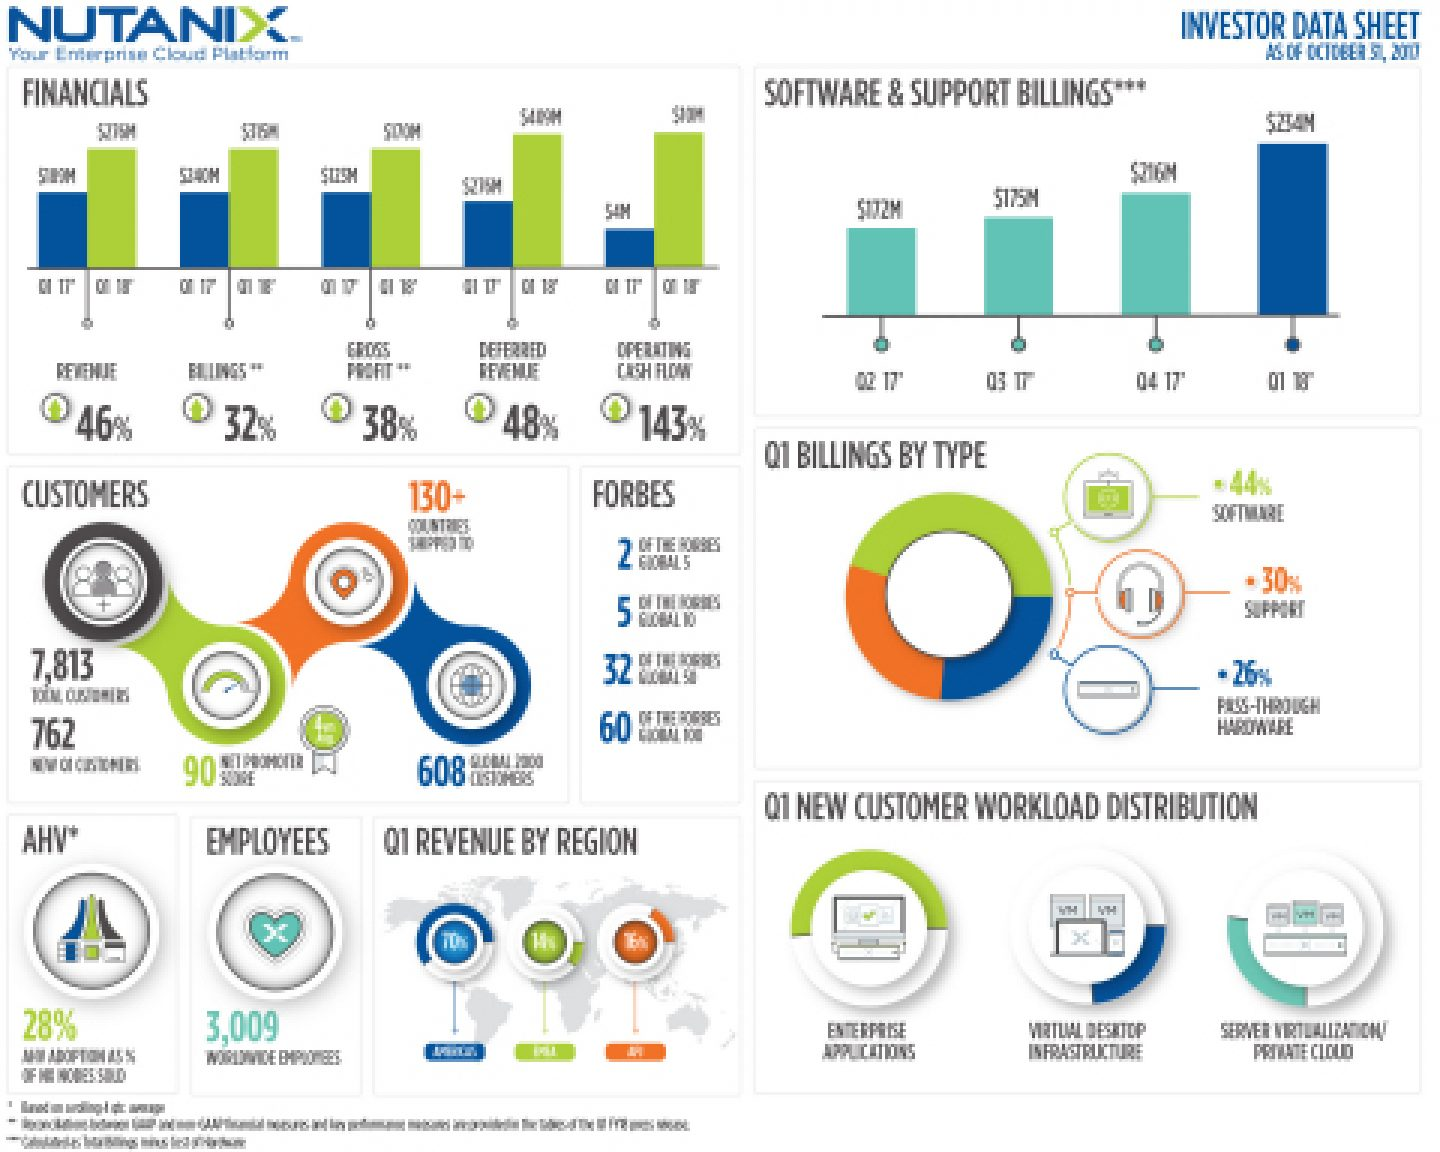 Nutanix Earnings Inf Final Web